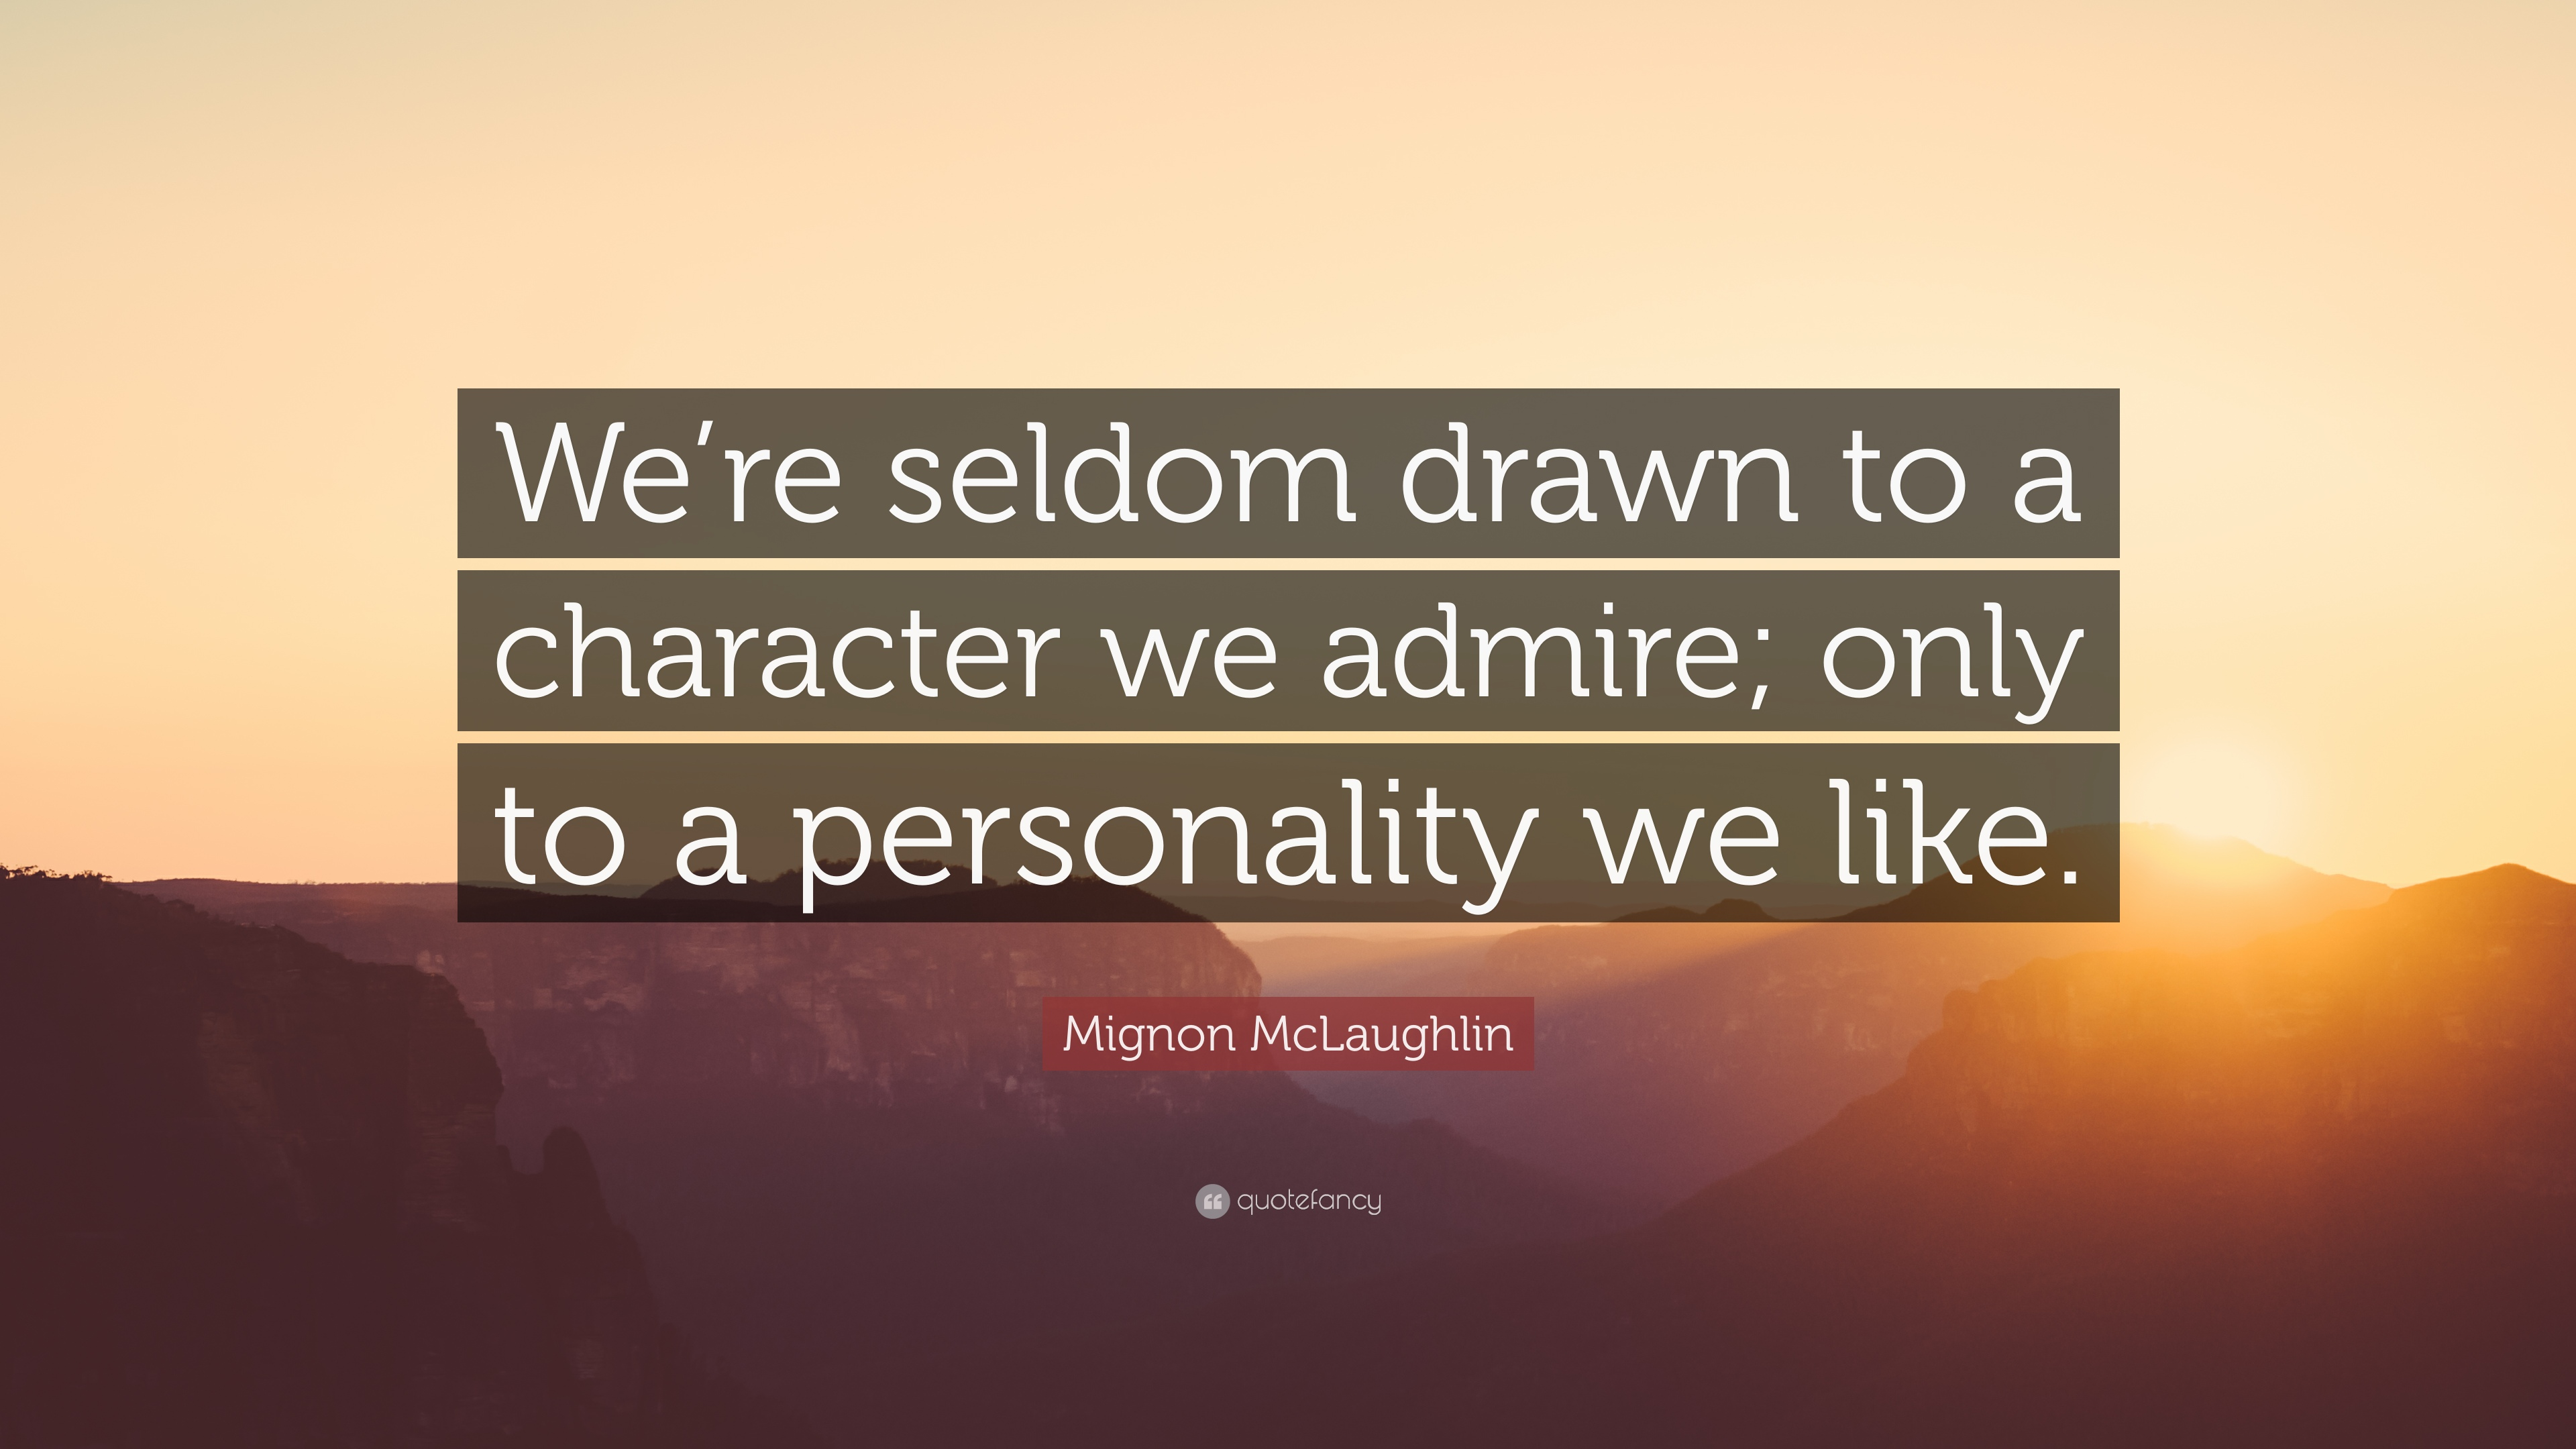 Drawn quote personality McLaughlin we Quote: to drawn